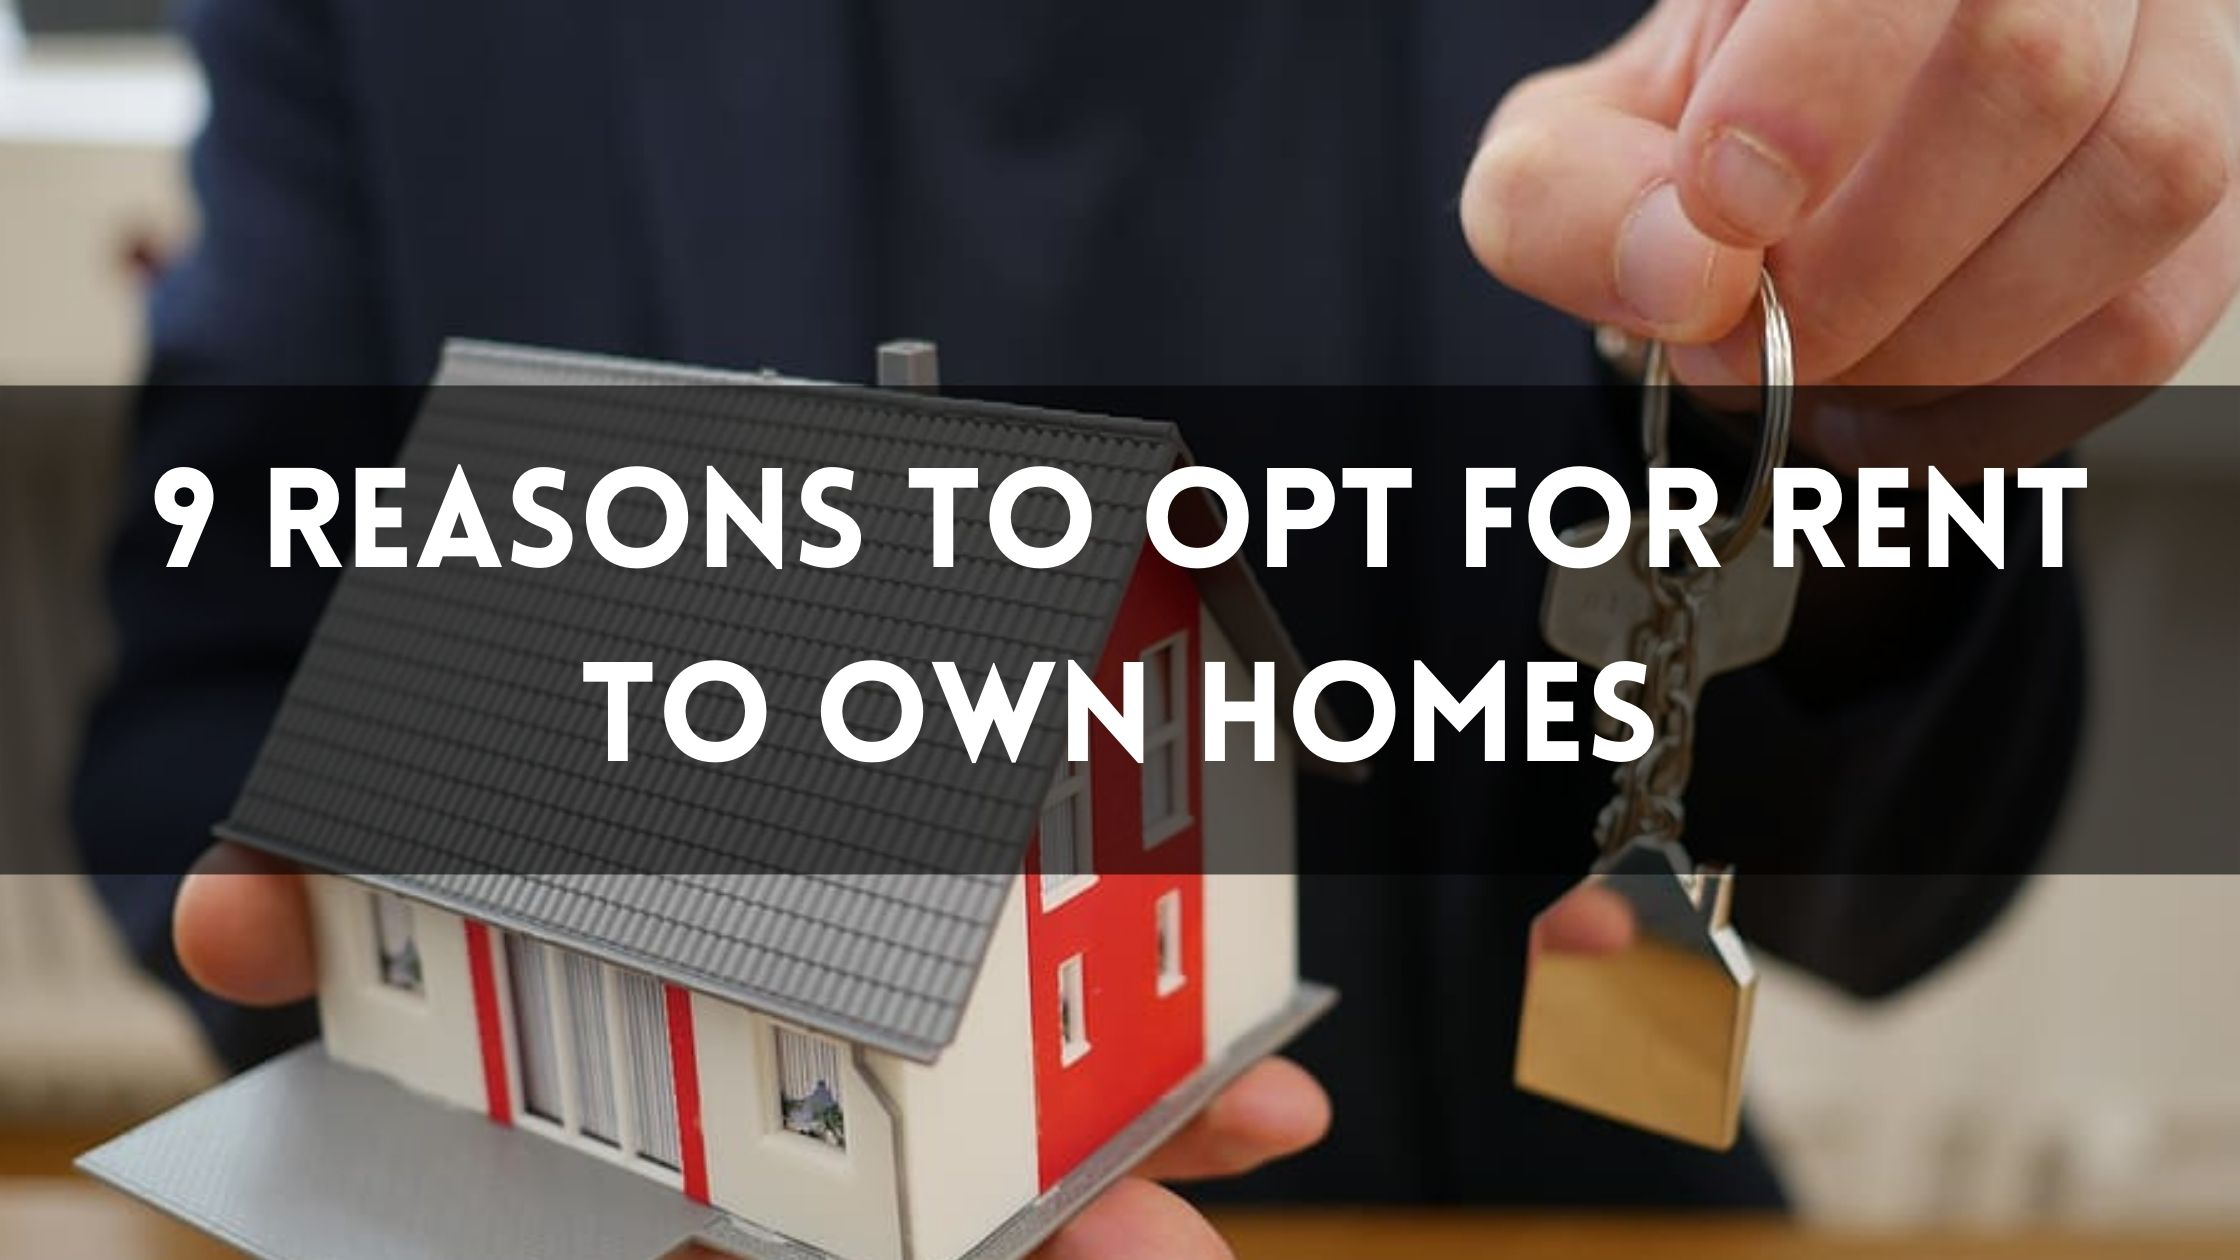 9 Reasons to Opt for Rent to Own Homes in Perth